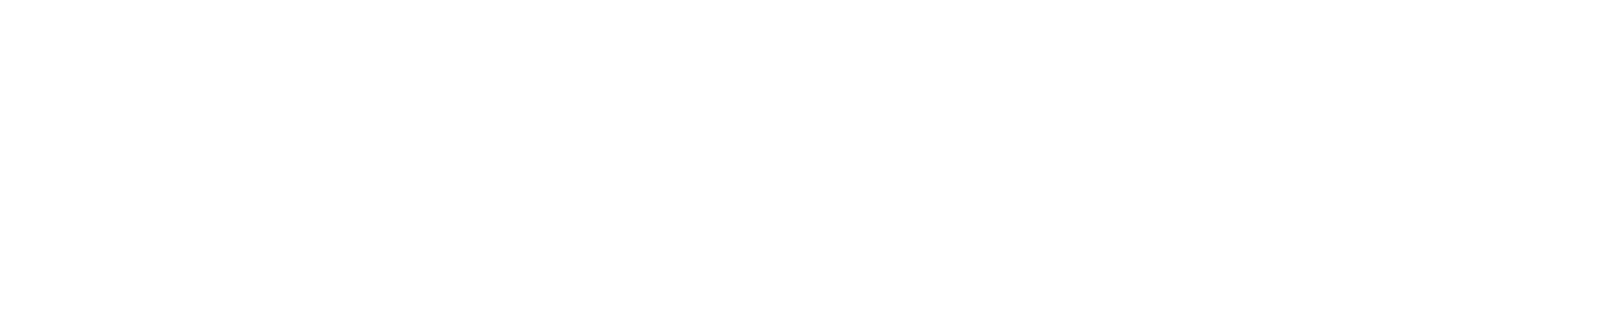 Franklin County Visitors Bureau - Exclusive Sponsor